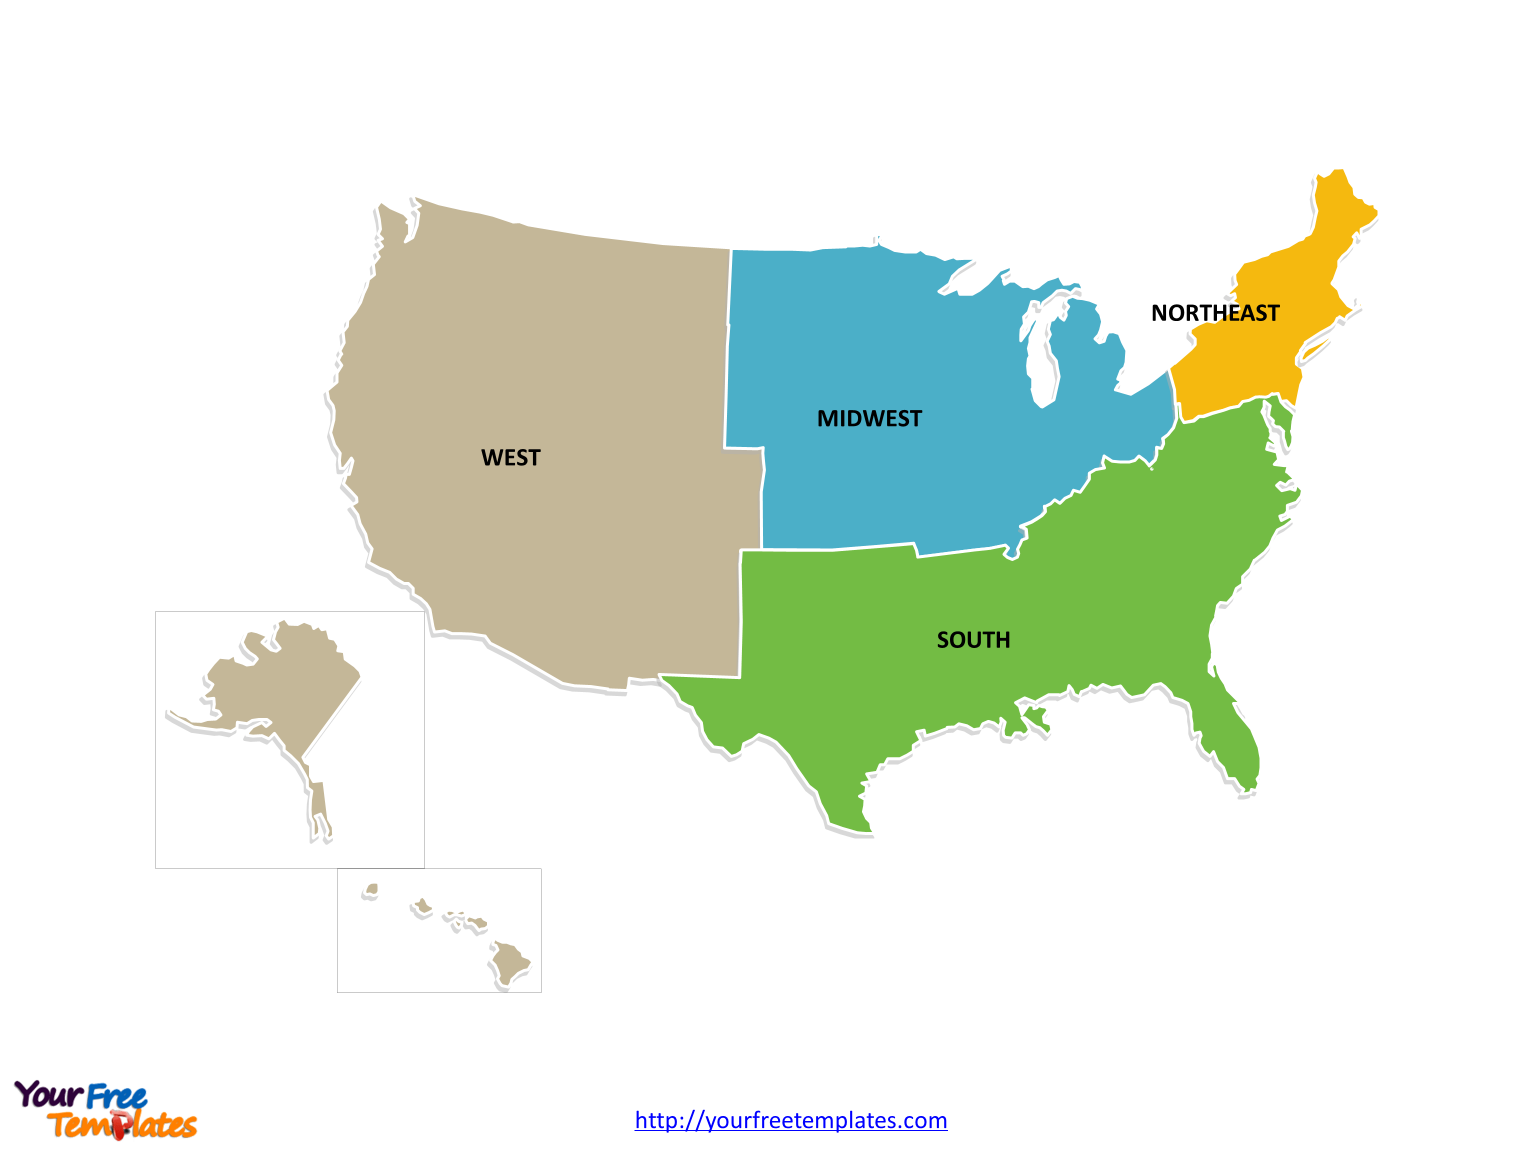 Free USA Region PowerPoint Map Free PowerPoint Templates - Us map midwest states